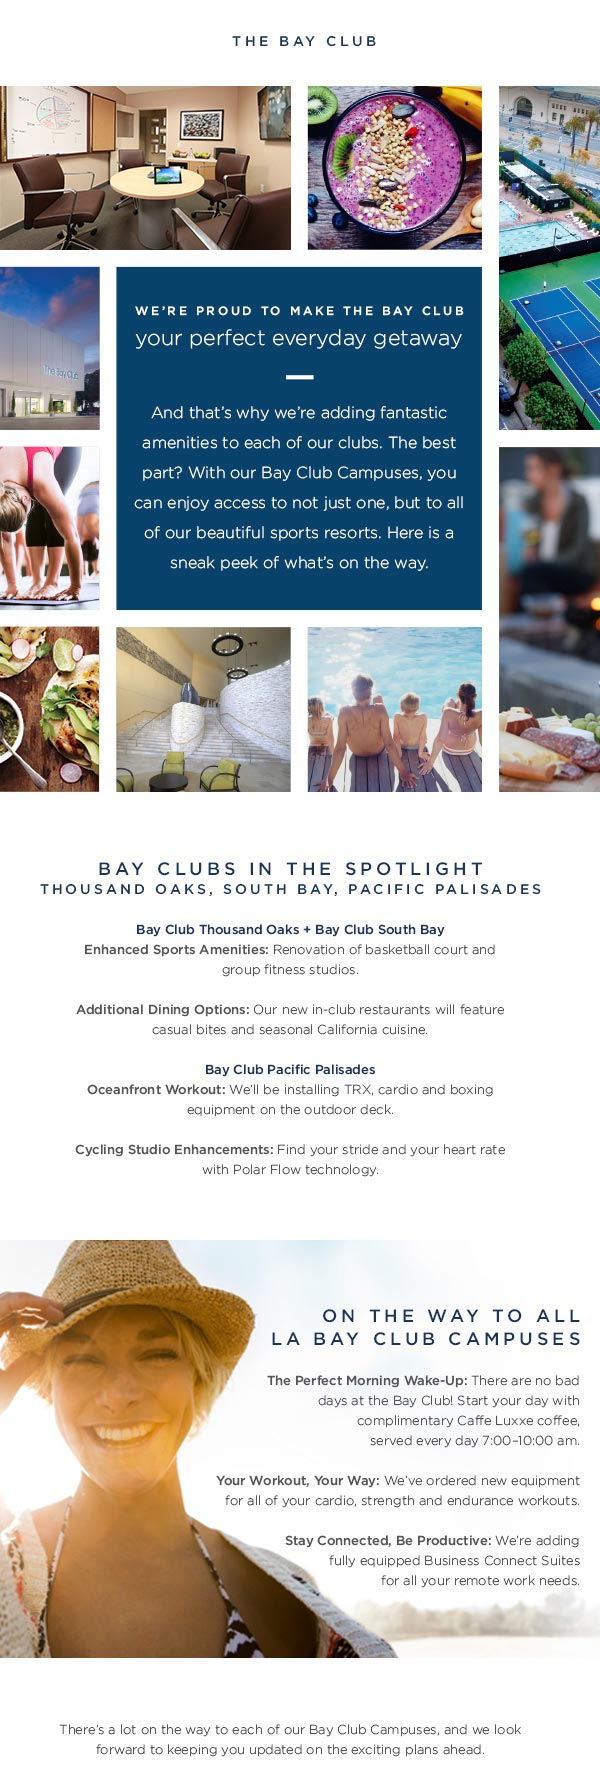 Bay Clubs in the Spotlight.jpg